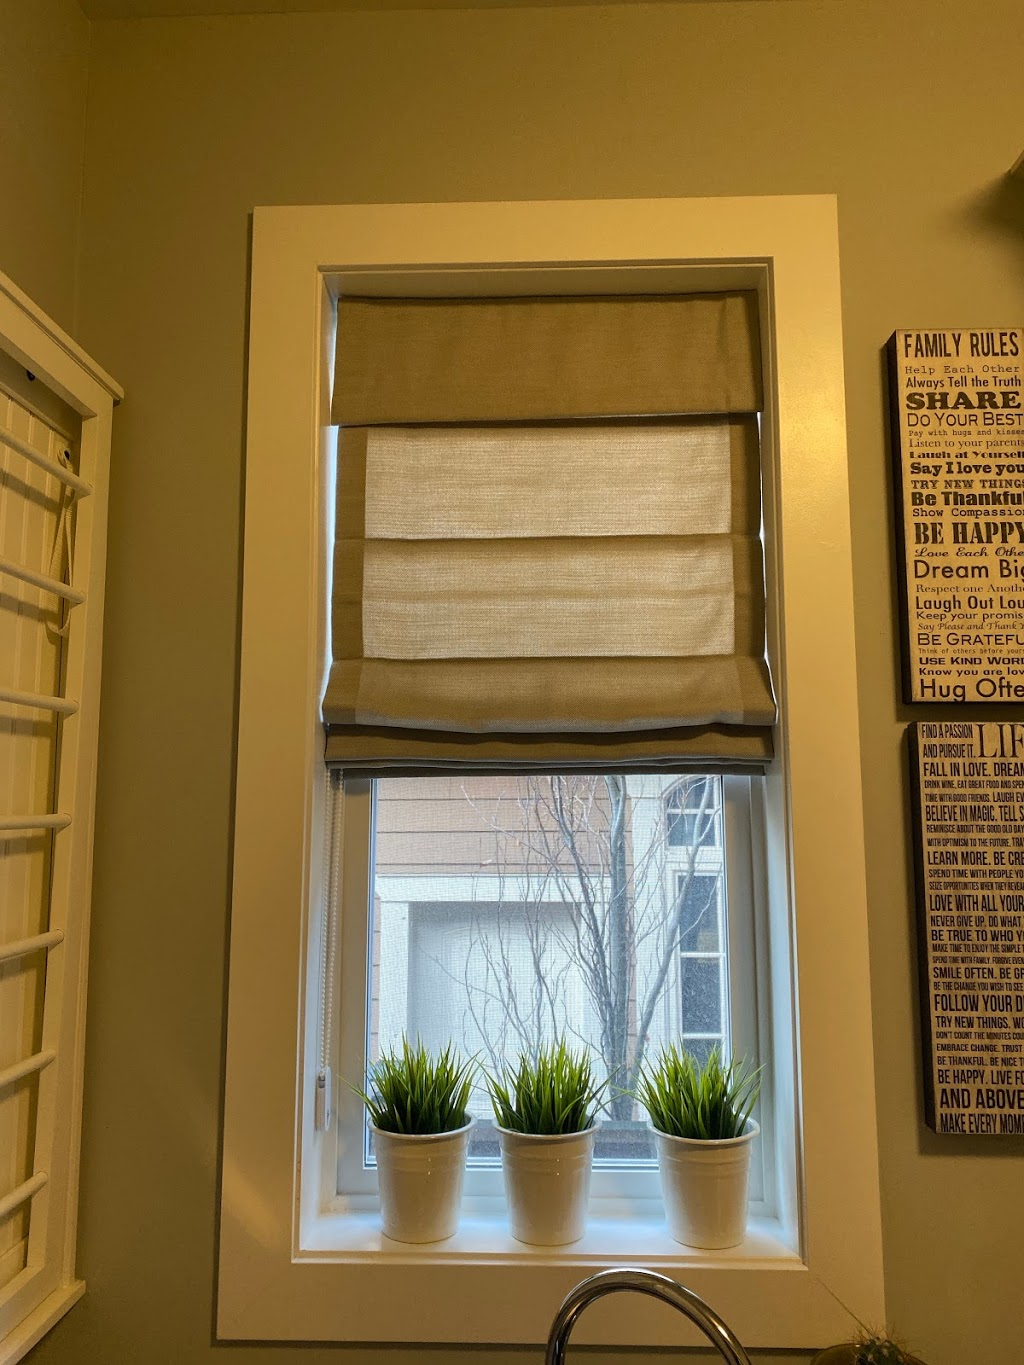 Budget Blinds of Chilliwack | store | 44500 S Sumas Rd #305, Chilliwack, BC V2R 5M3, Canada | 6047925463 OR +1 604-792-5463